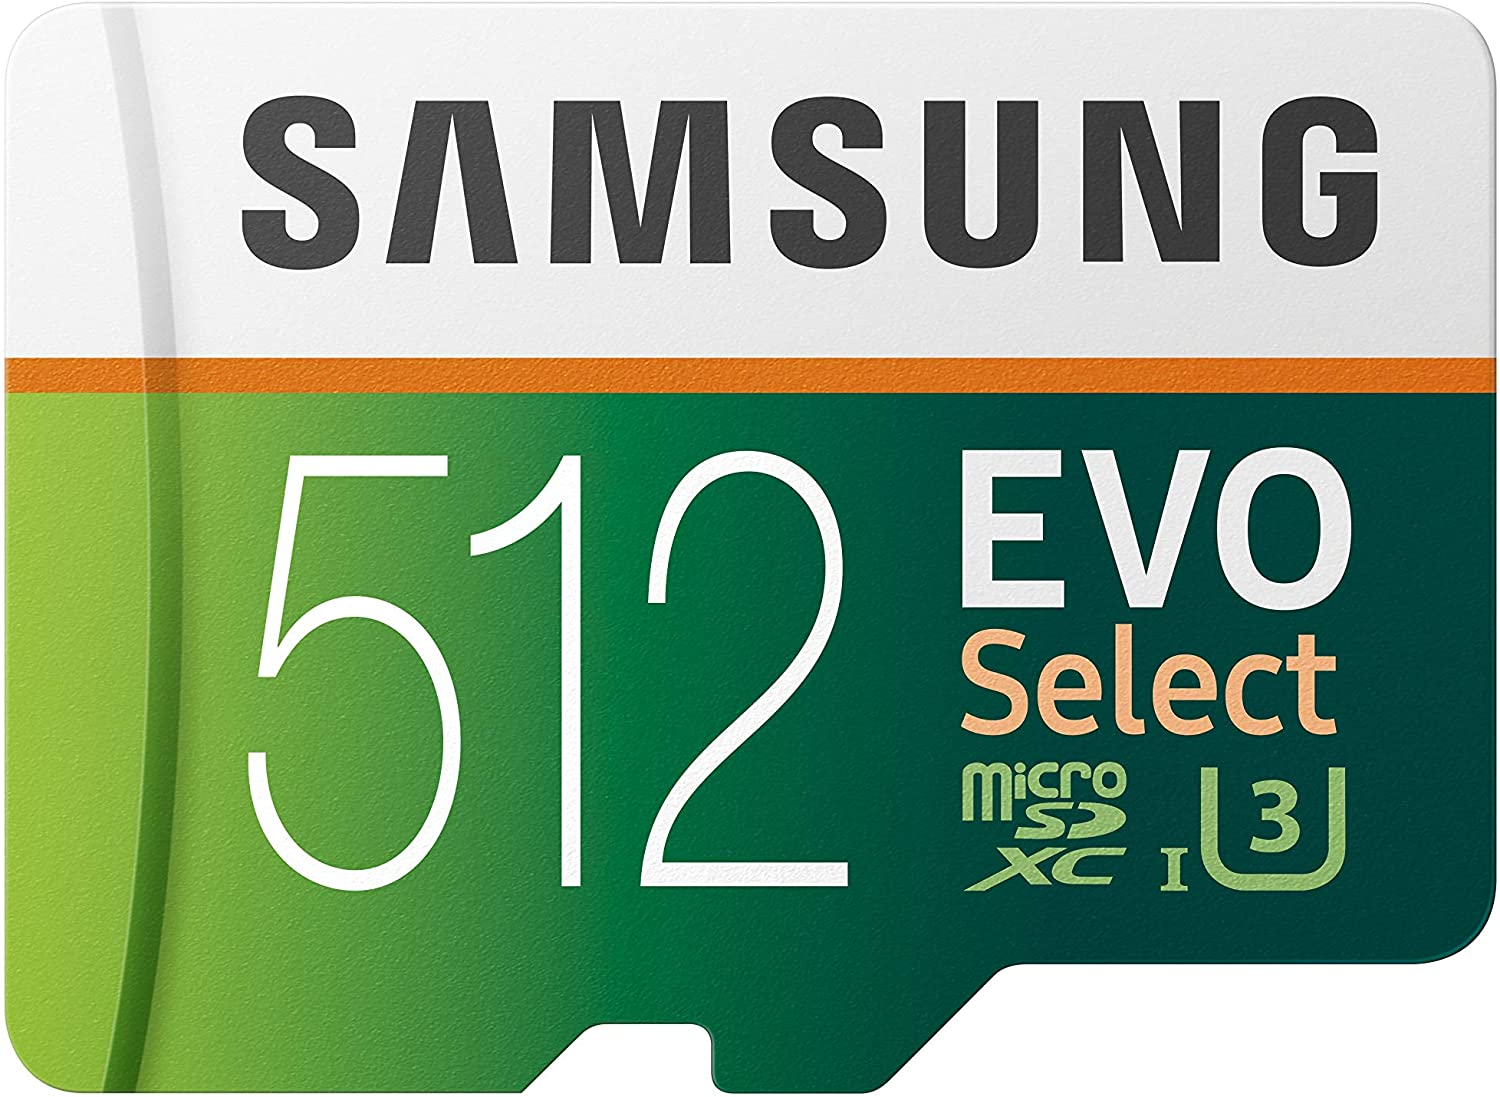 Samsung Evo Select 512gb Render Cropped